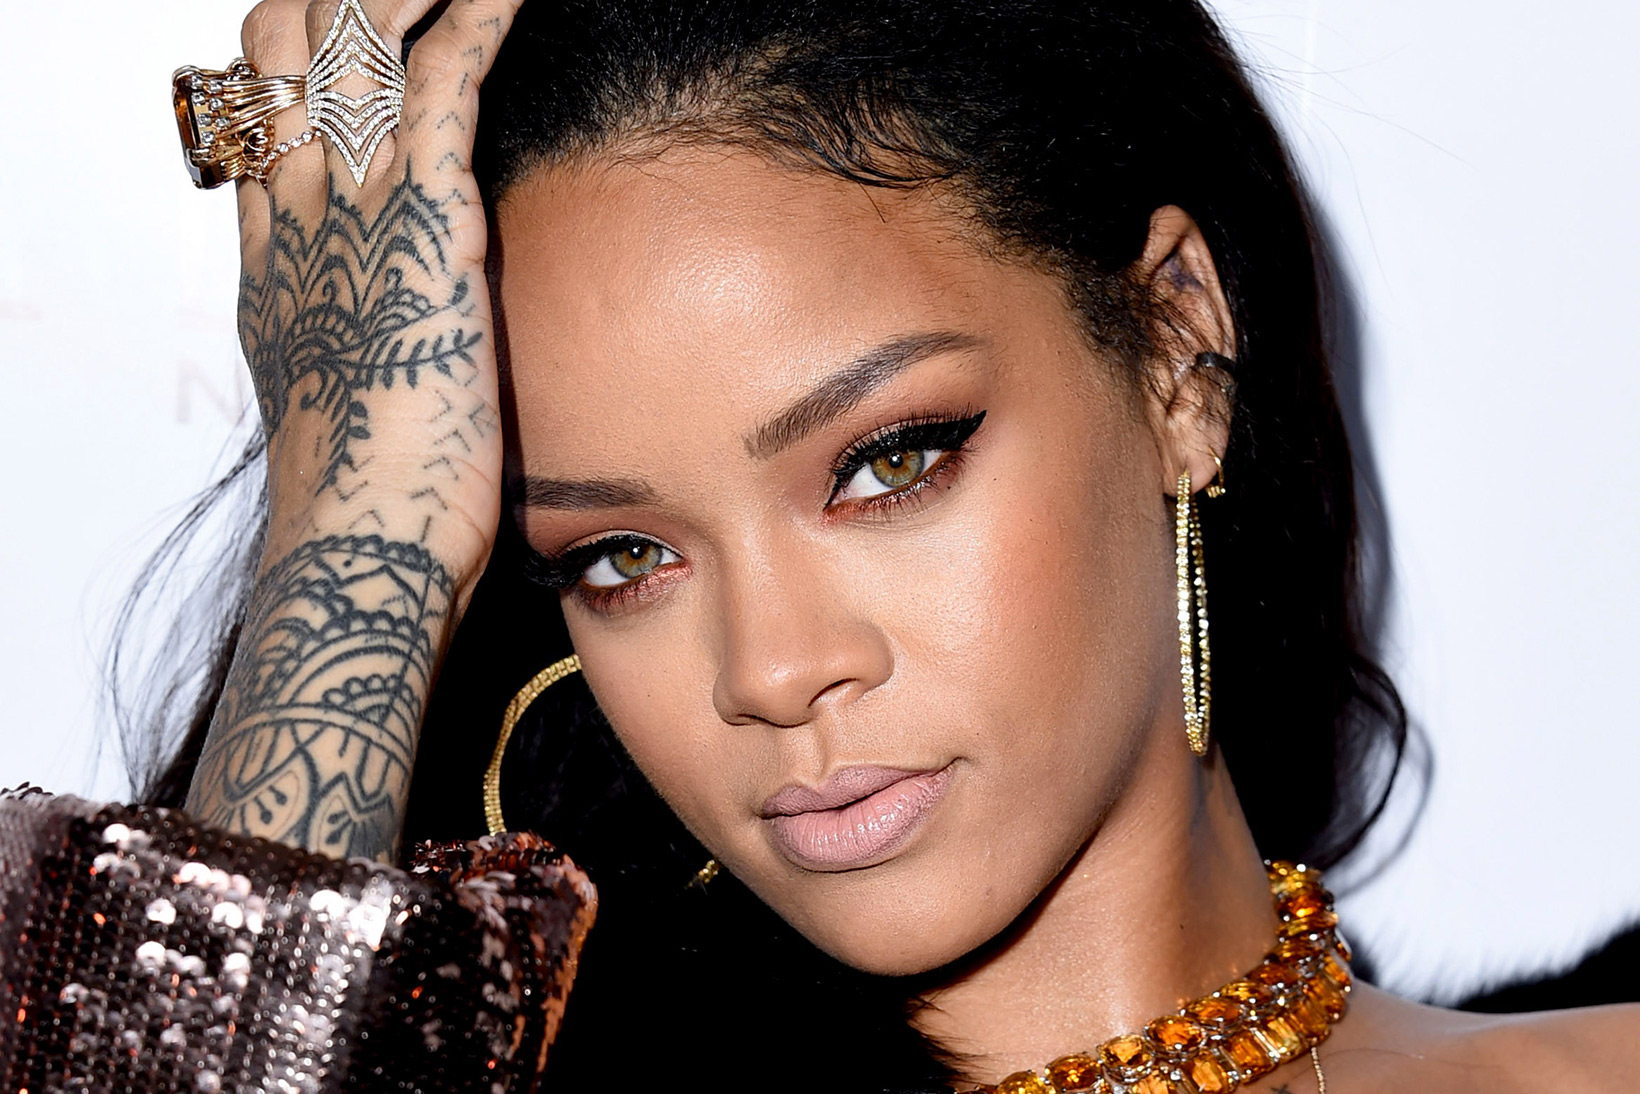 Rihanna Will Be Crowned With This Year's Michael Jackson Video Vanguard Award at MTV VMAs